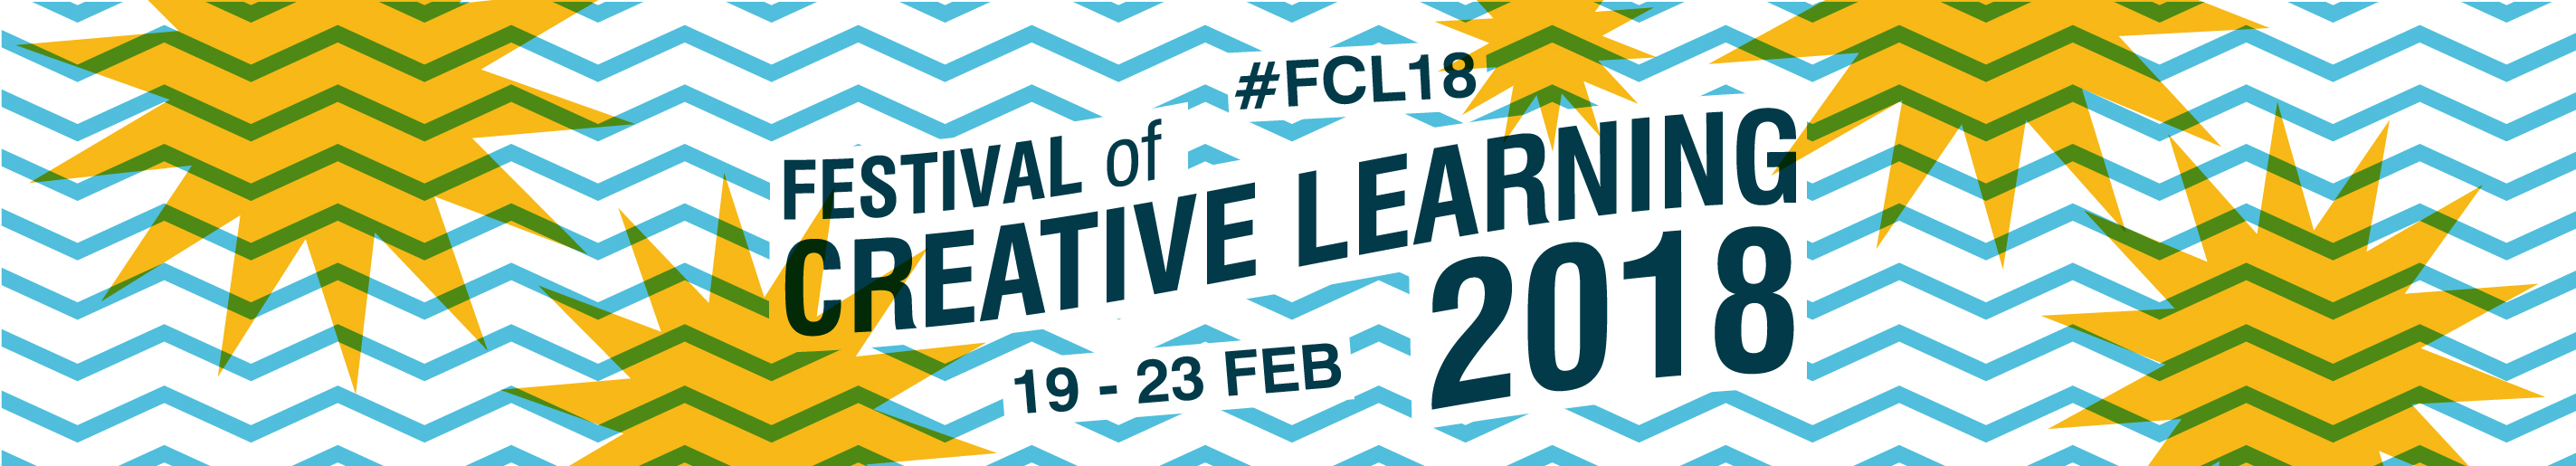 Festival of Creative Learning banner